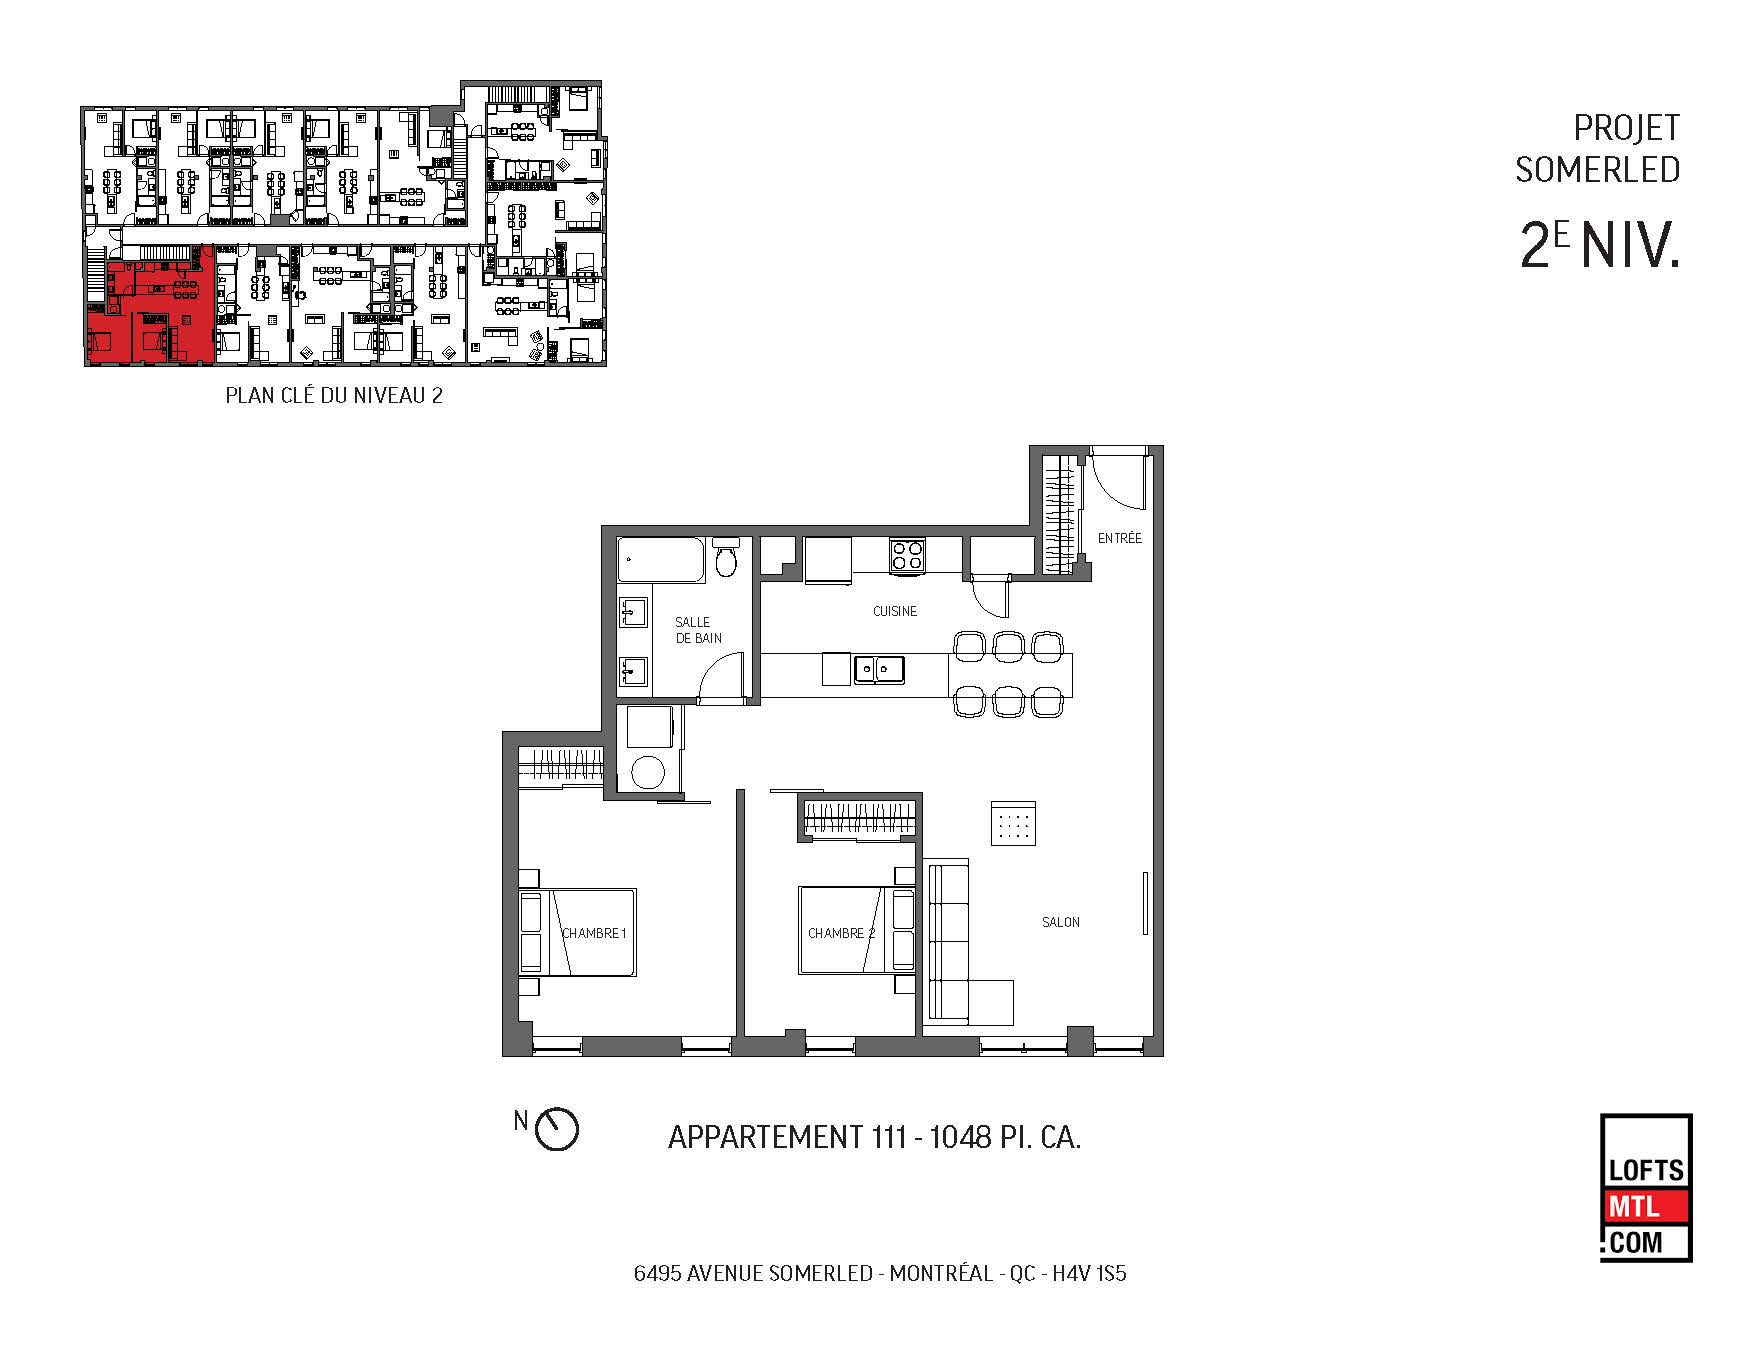 Plans appartements vectoriel Somerled_Page_11.jpg